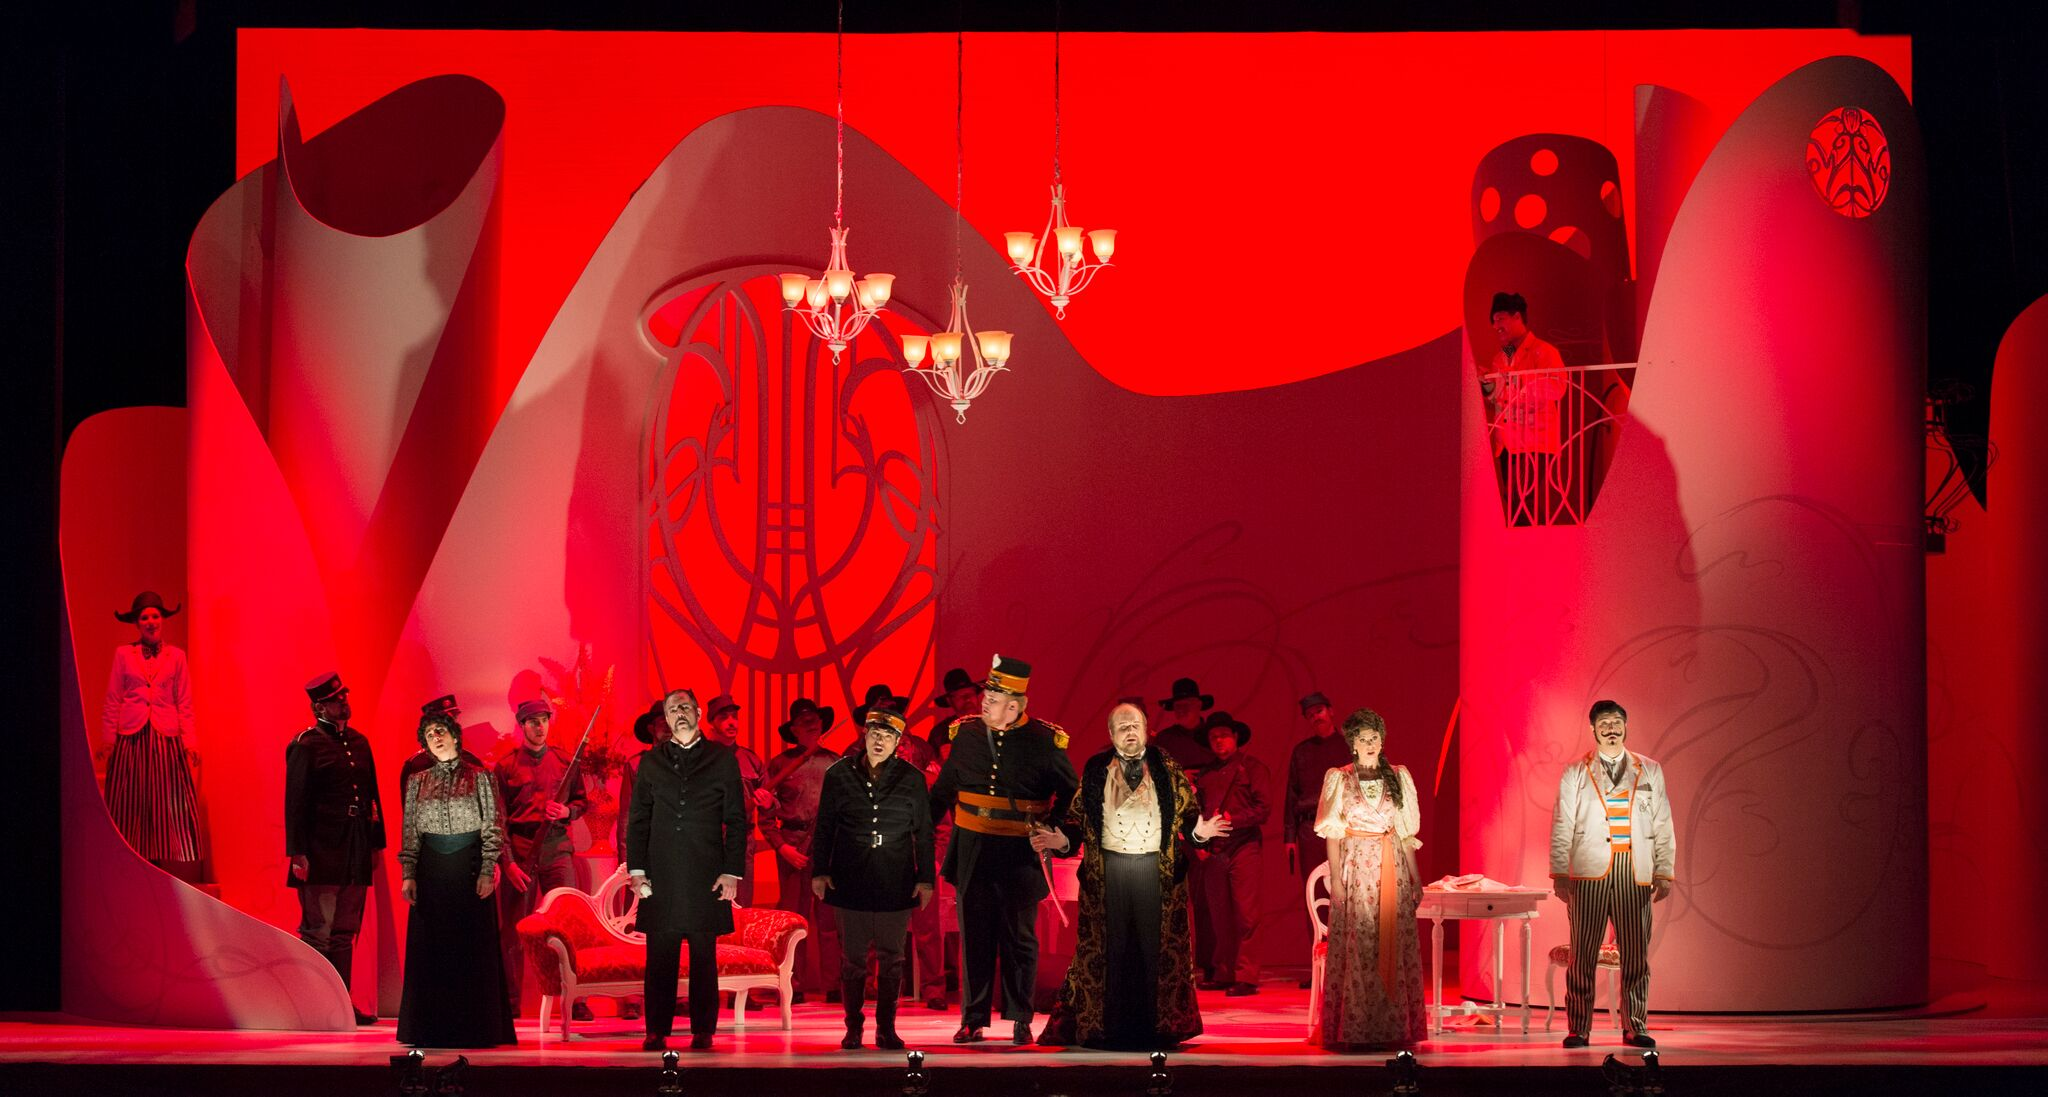 Vancouver Opera Presents: The Barber of Seville